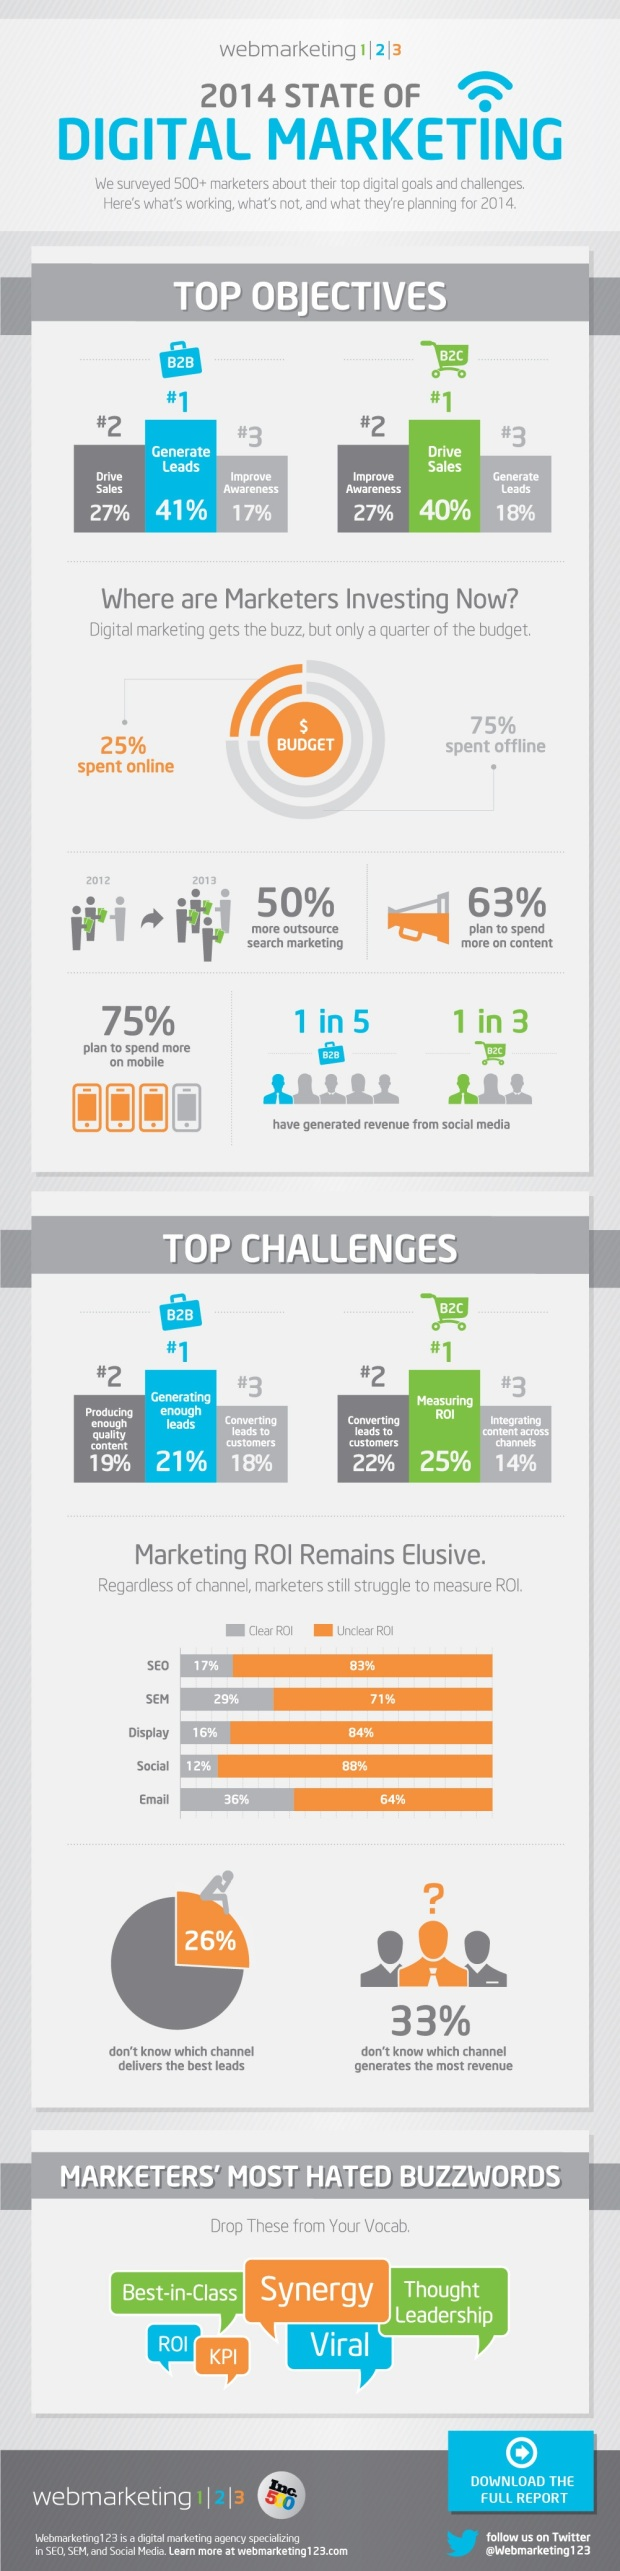 2014 State of Digital Marketing [INFOGRAPHIC]